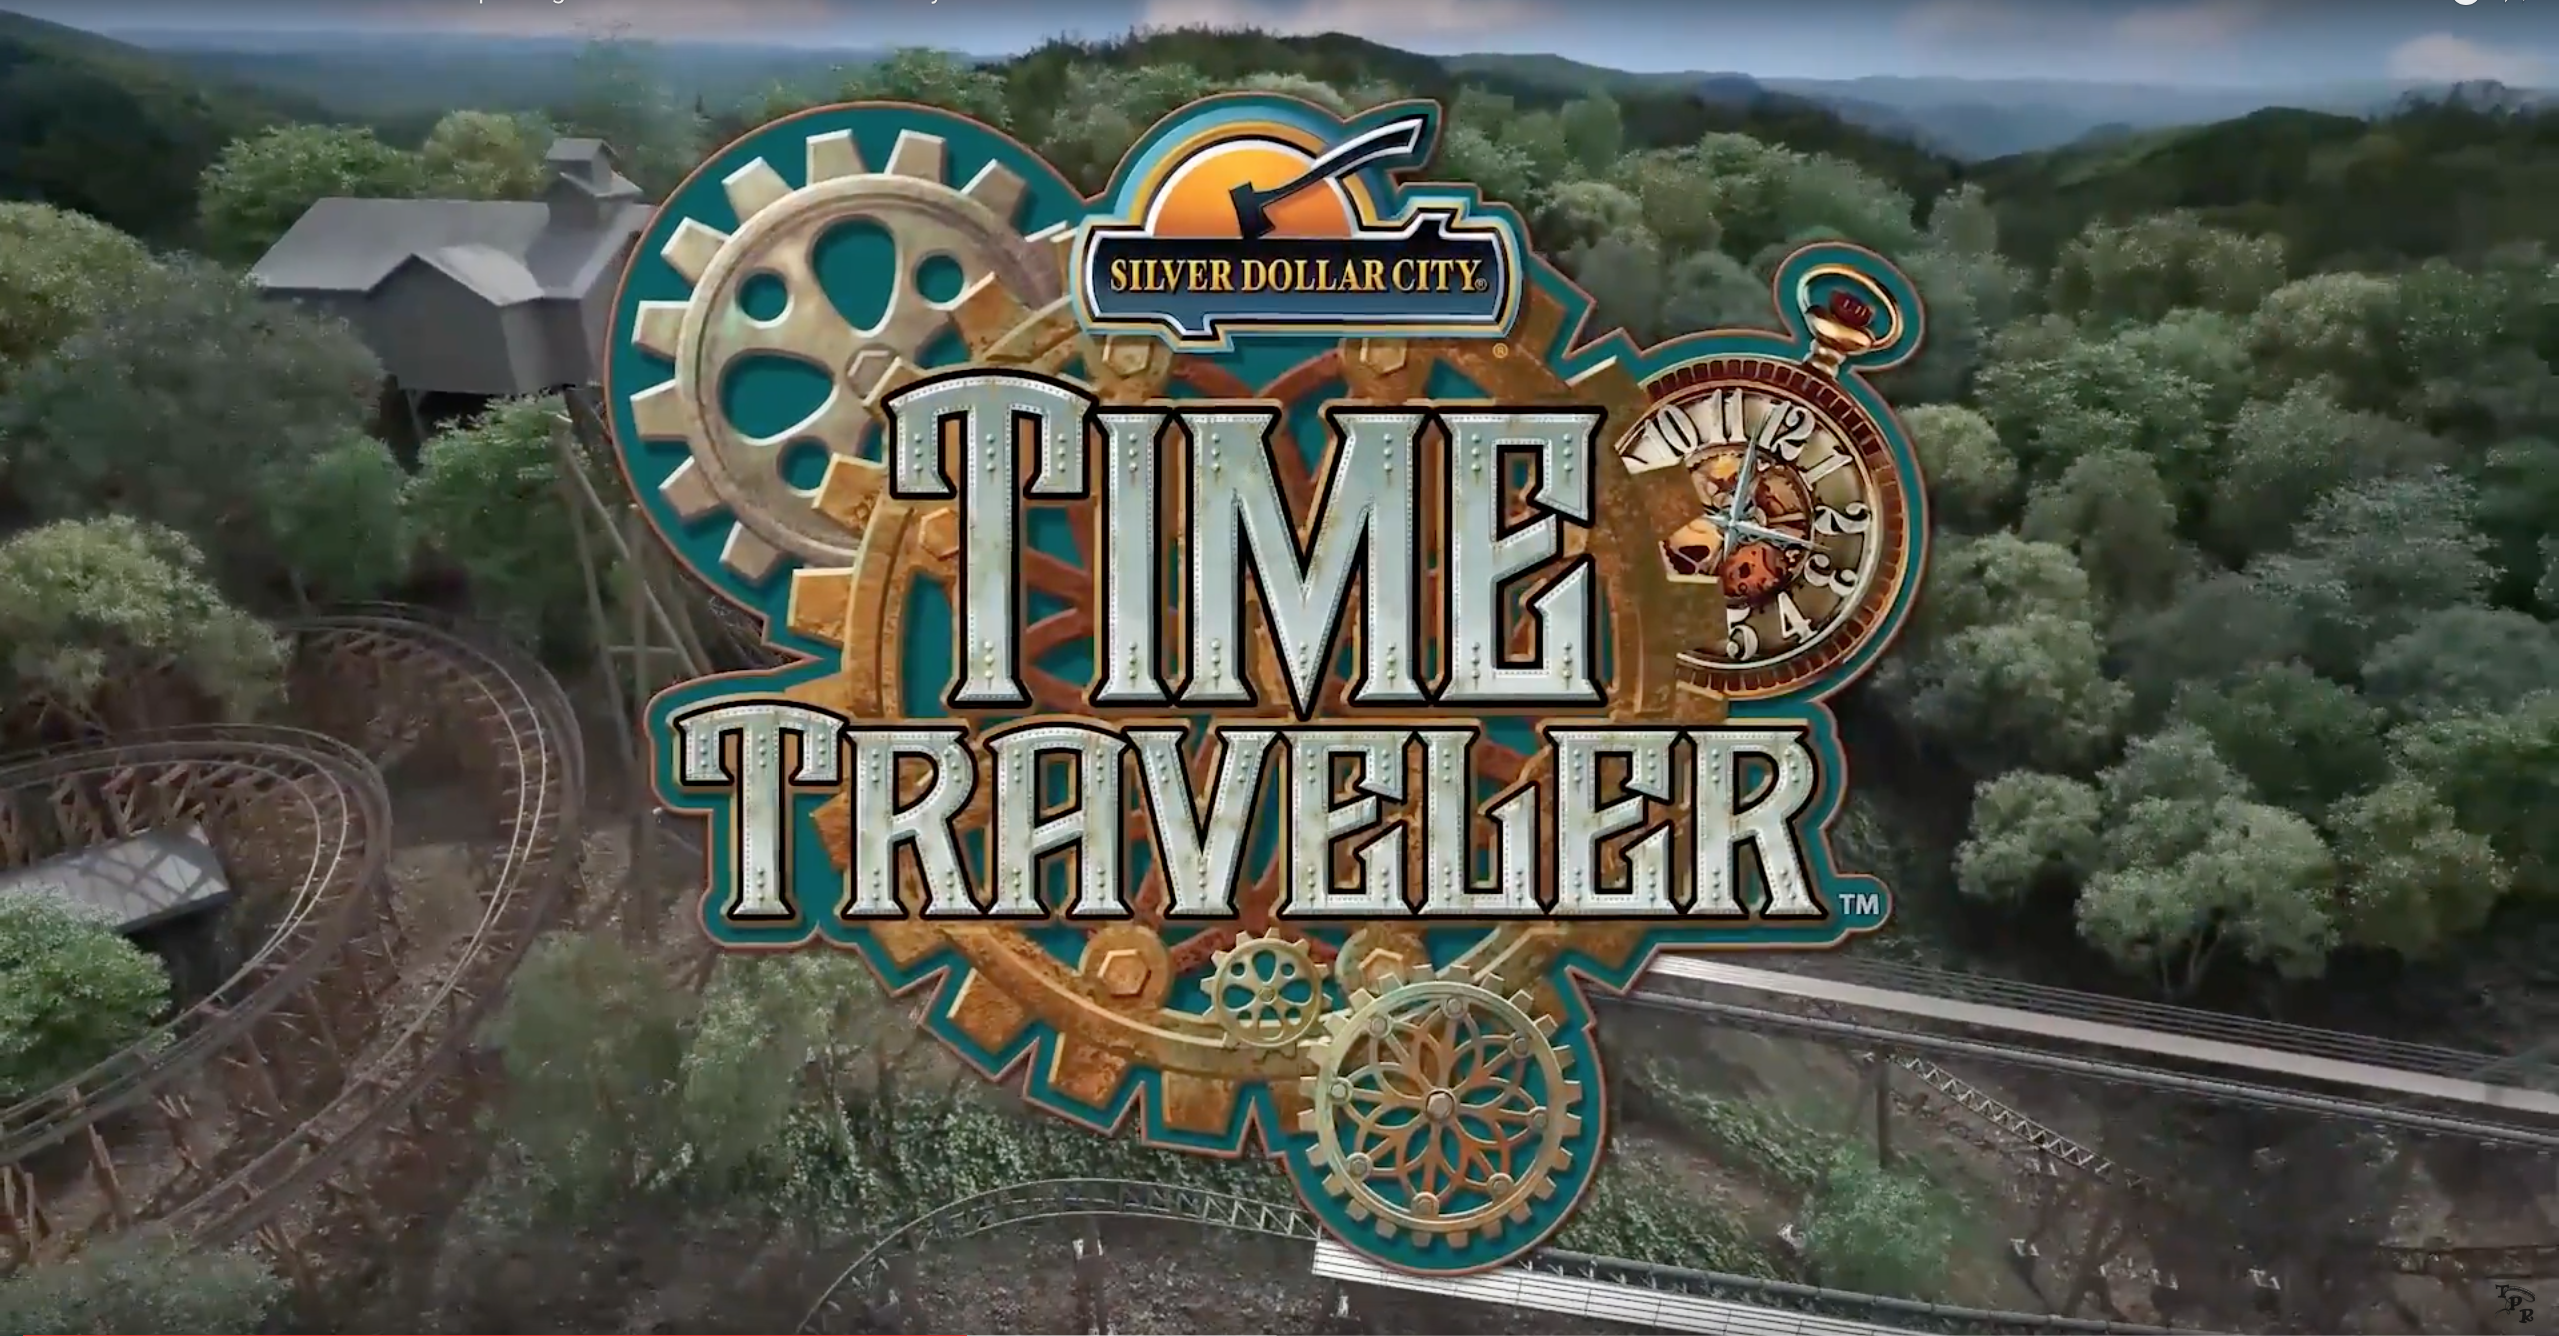 Time Traveler Roller Coaster Set to Open in 2018